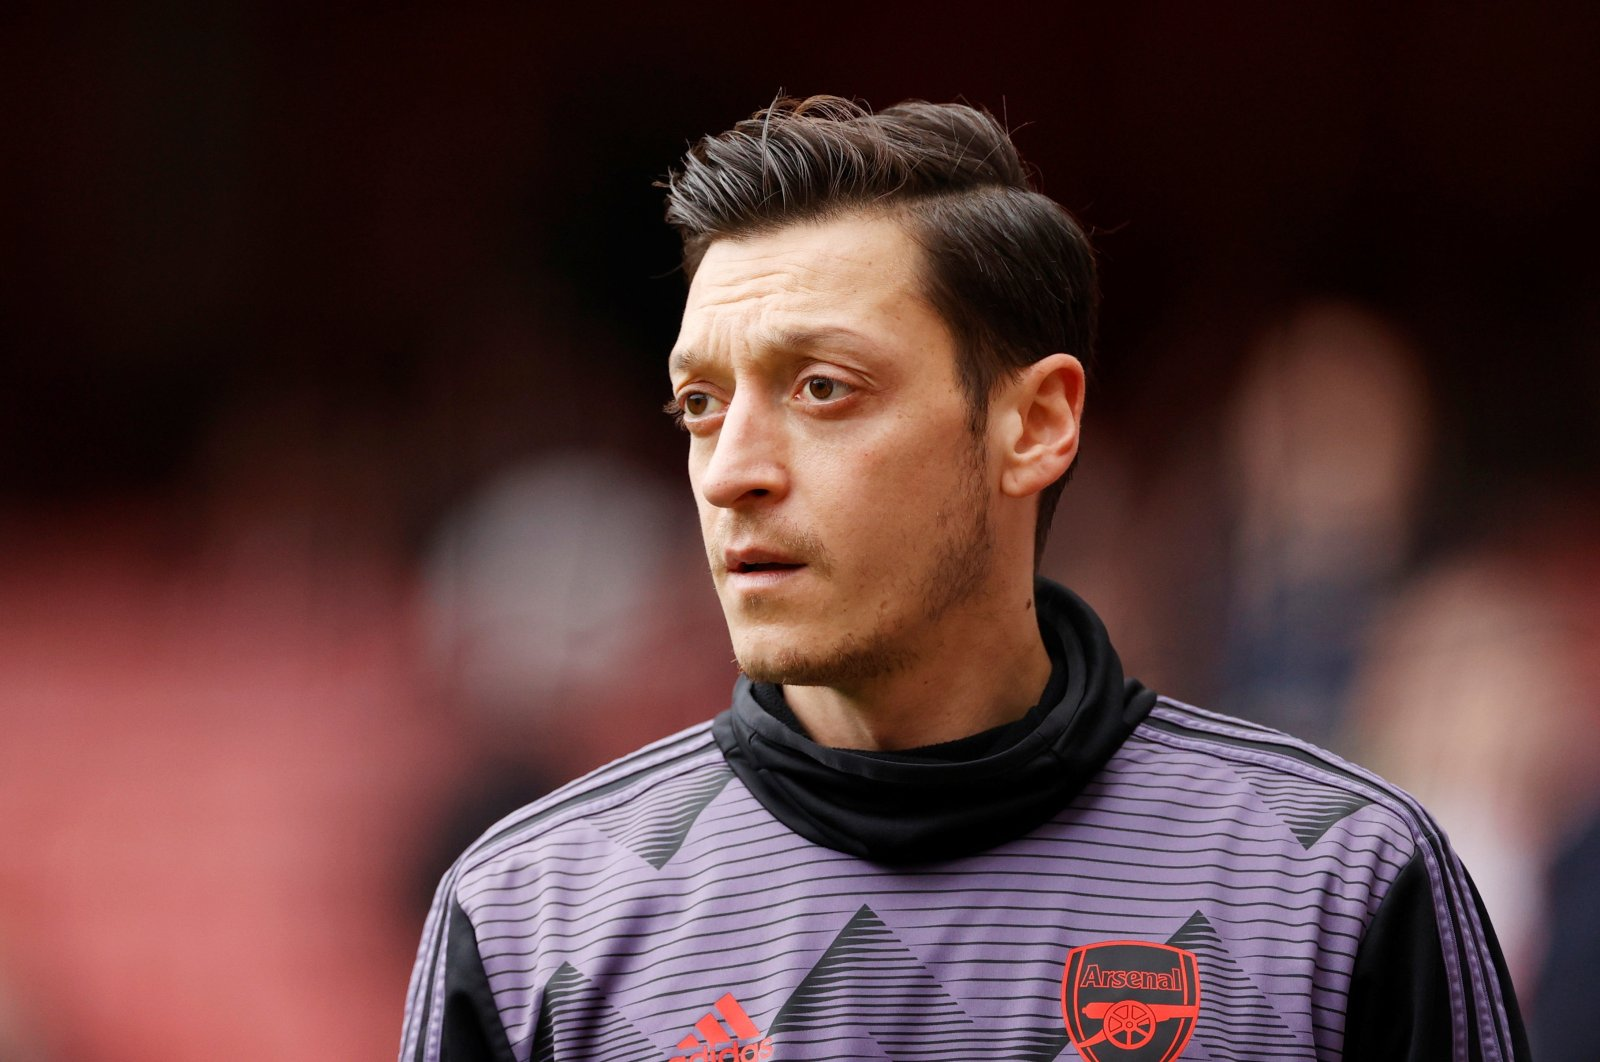 Arsenal's Mesut Özil during the warm up before the Premier League game between Arsenal and West Ham United, Emirates Stadium, London, March 7, 2020. (Reuters Photo)